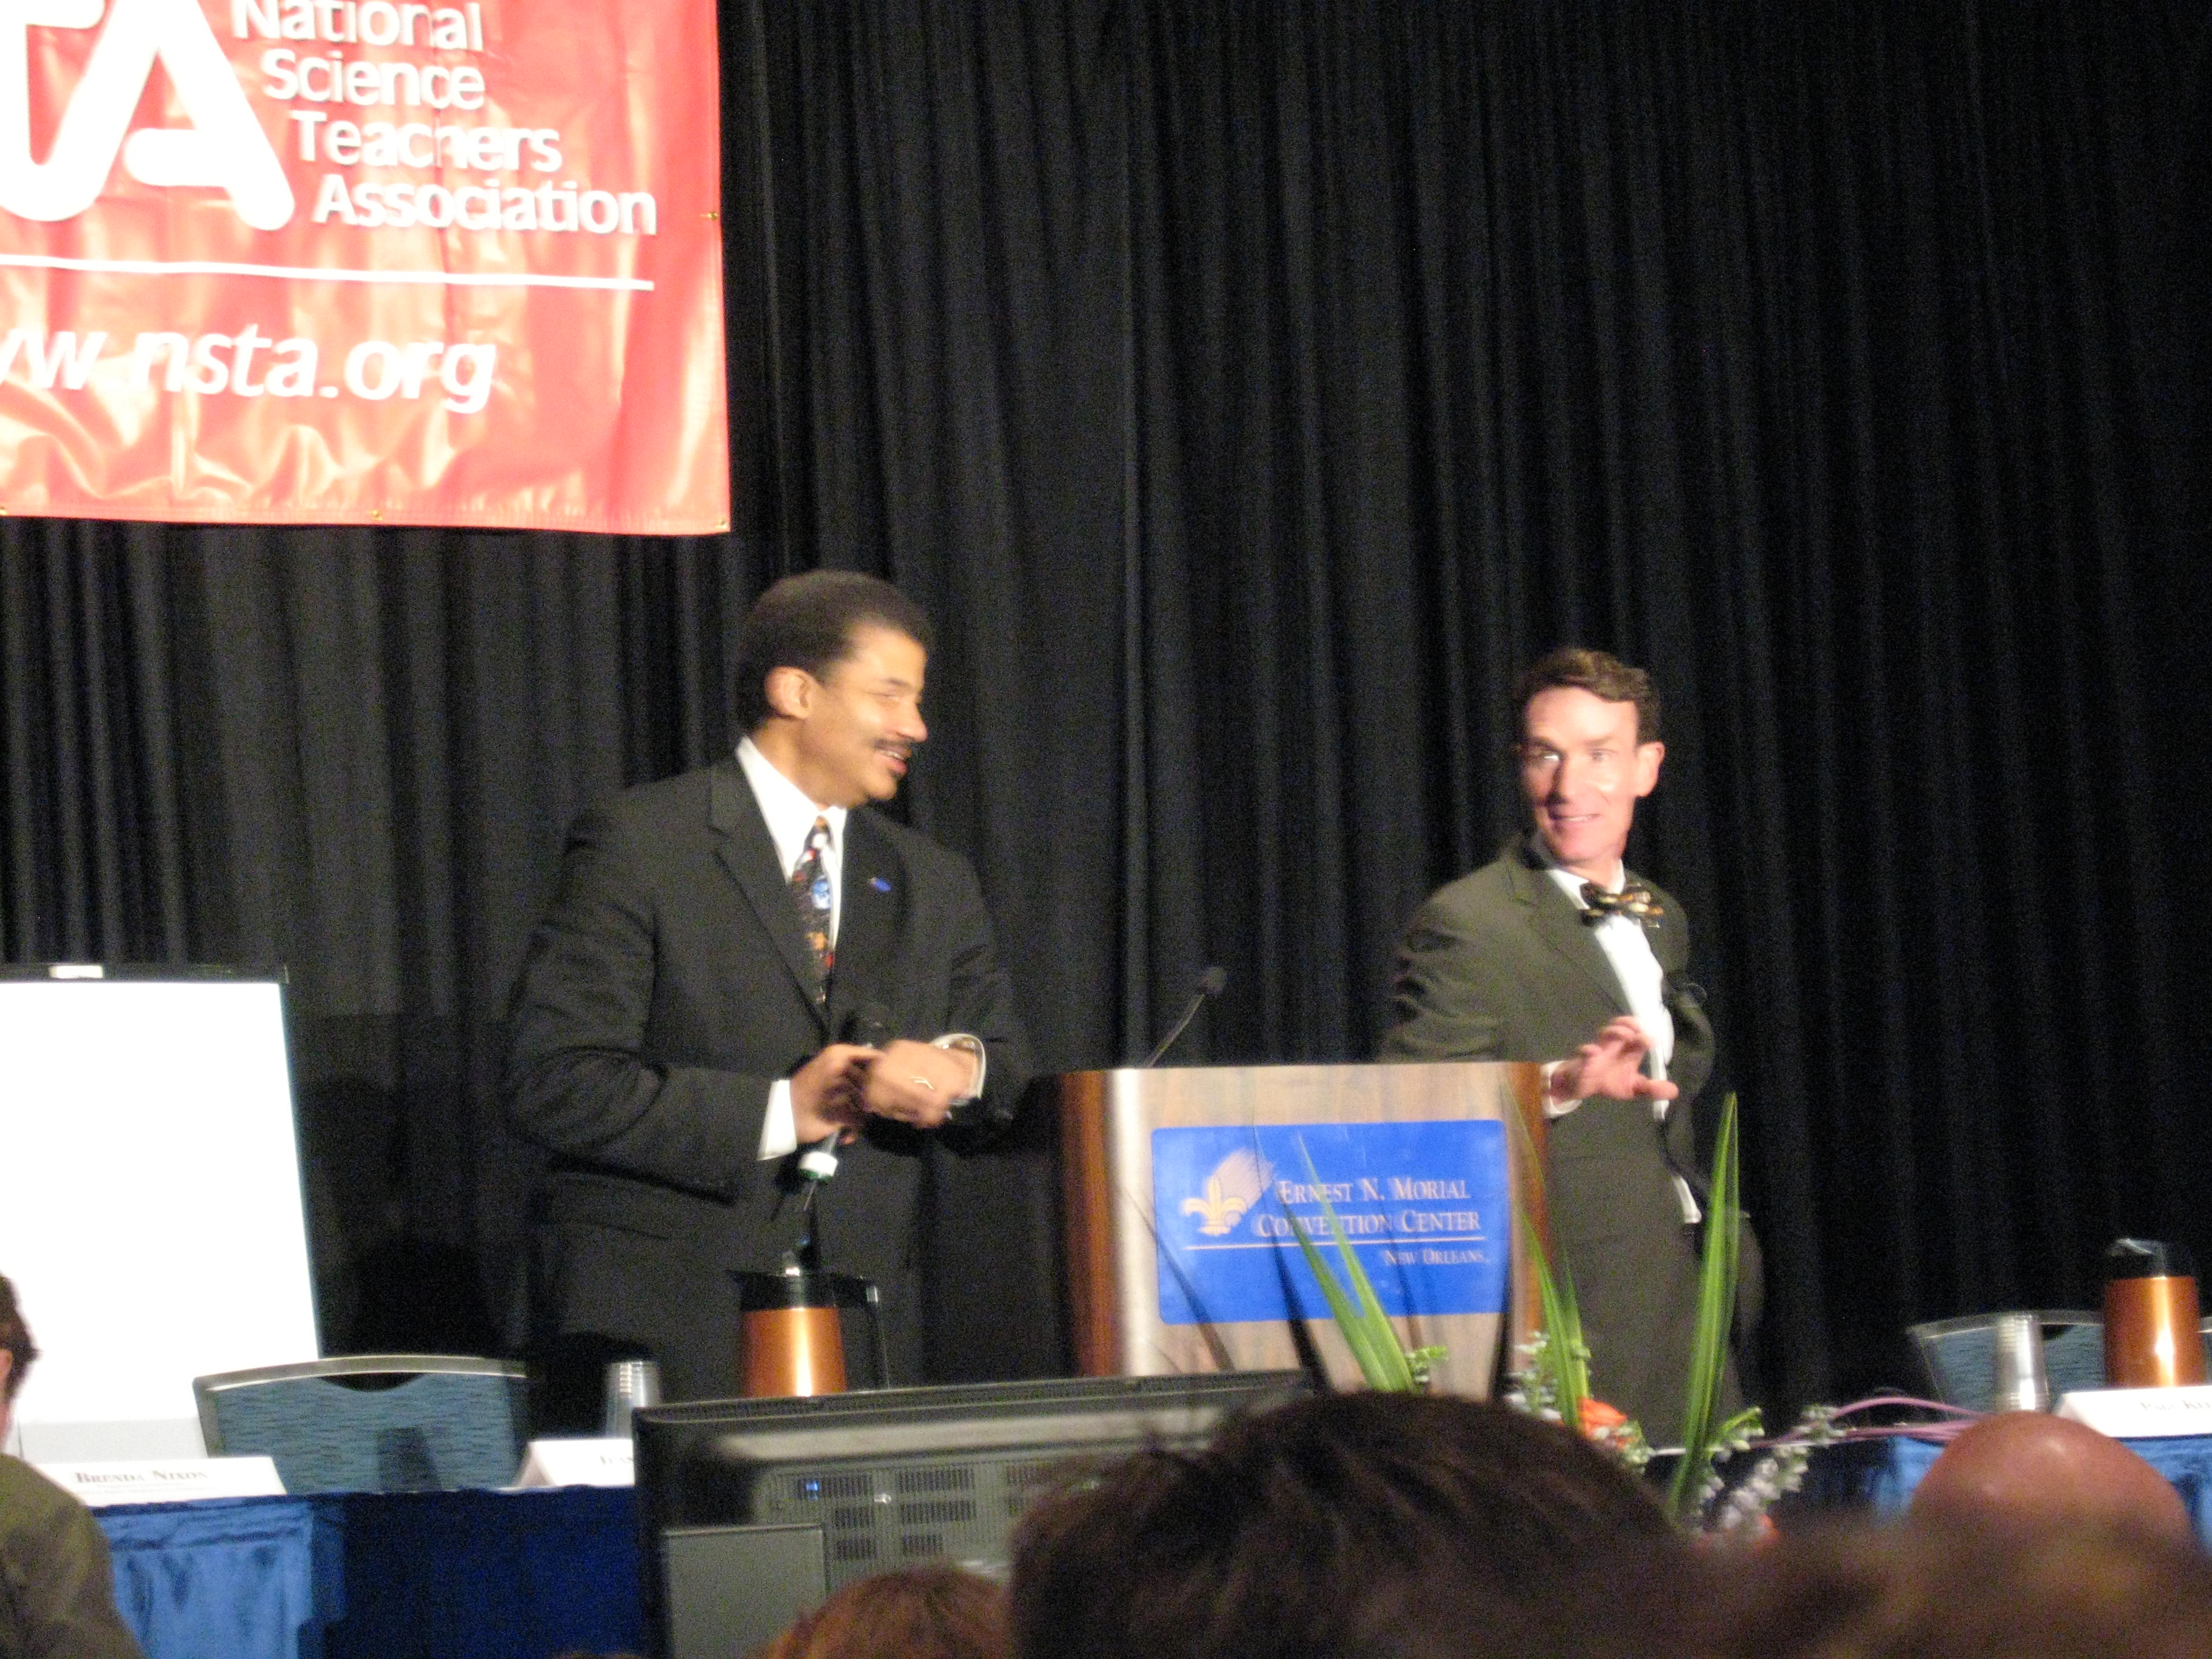 Yesterday, the Planetary Society sponsored a talk with Bill Nye and Neil deGrasse Tyson. It was absolutely amazing, and you can scan through my tweets (and Dale&#8217;s) to see what...